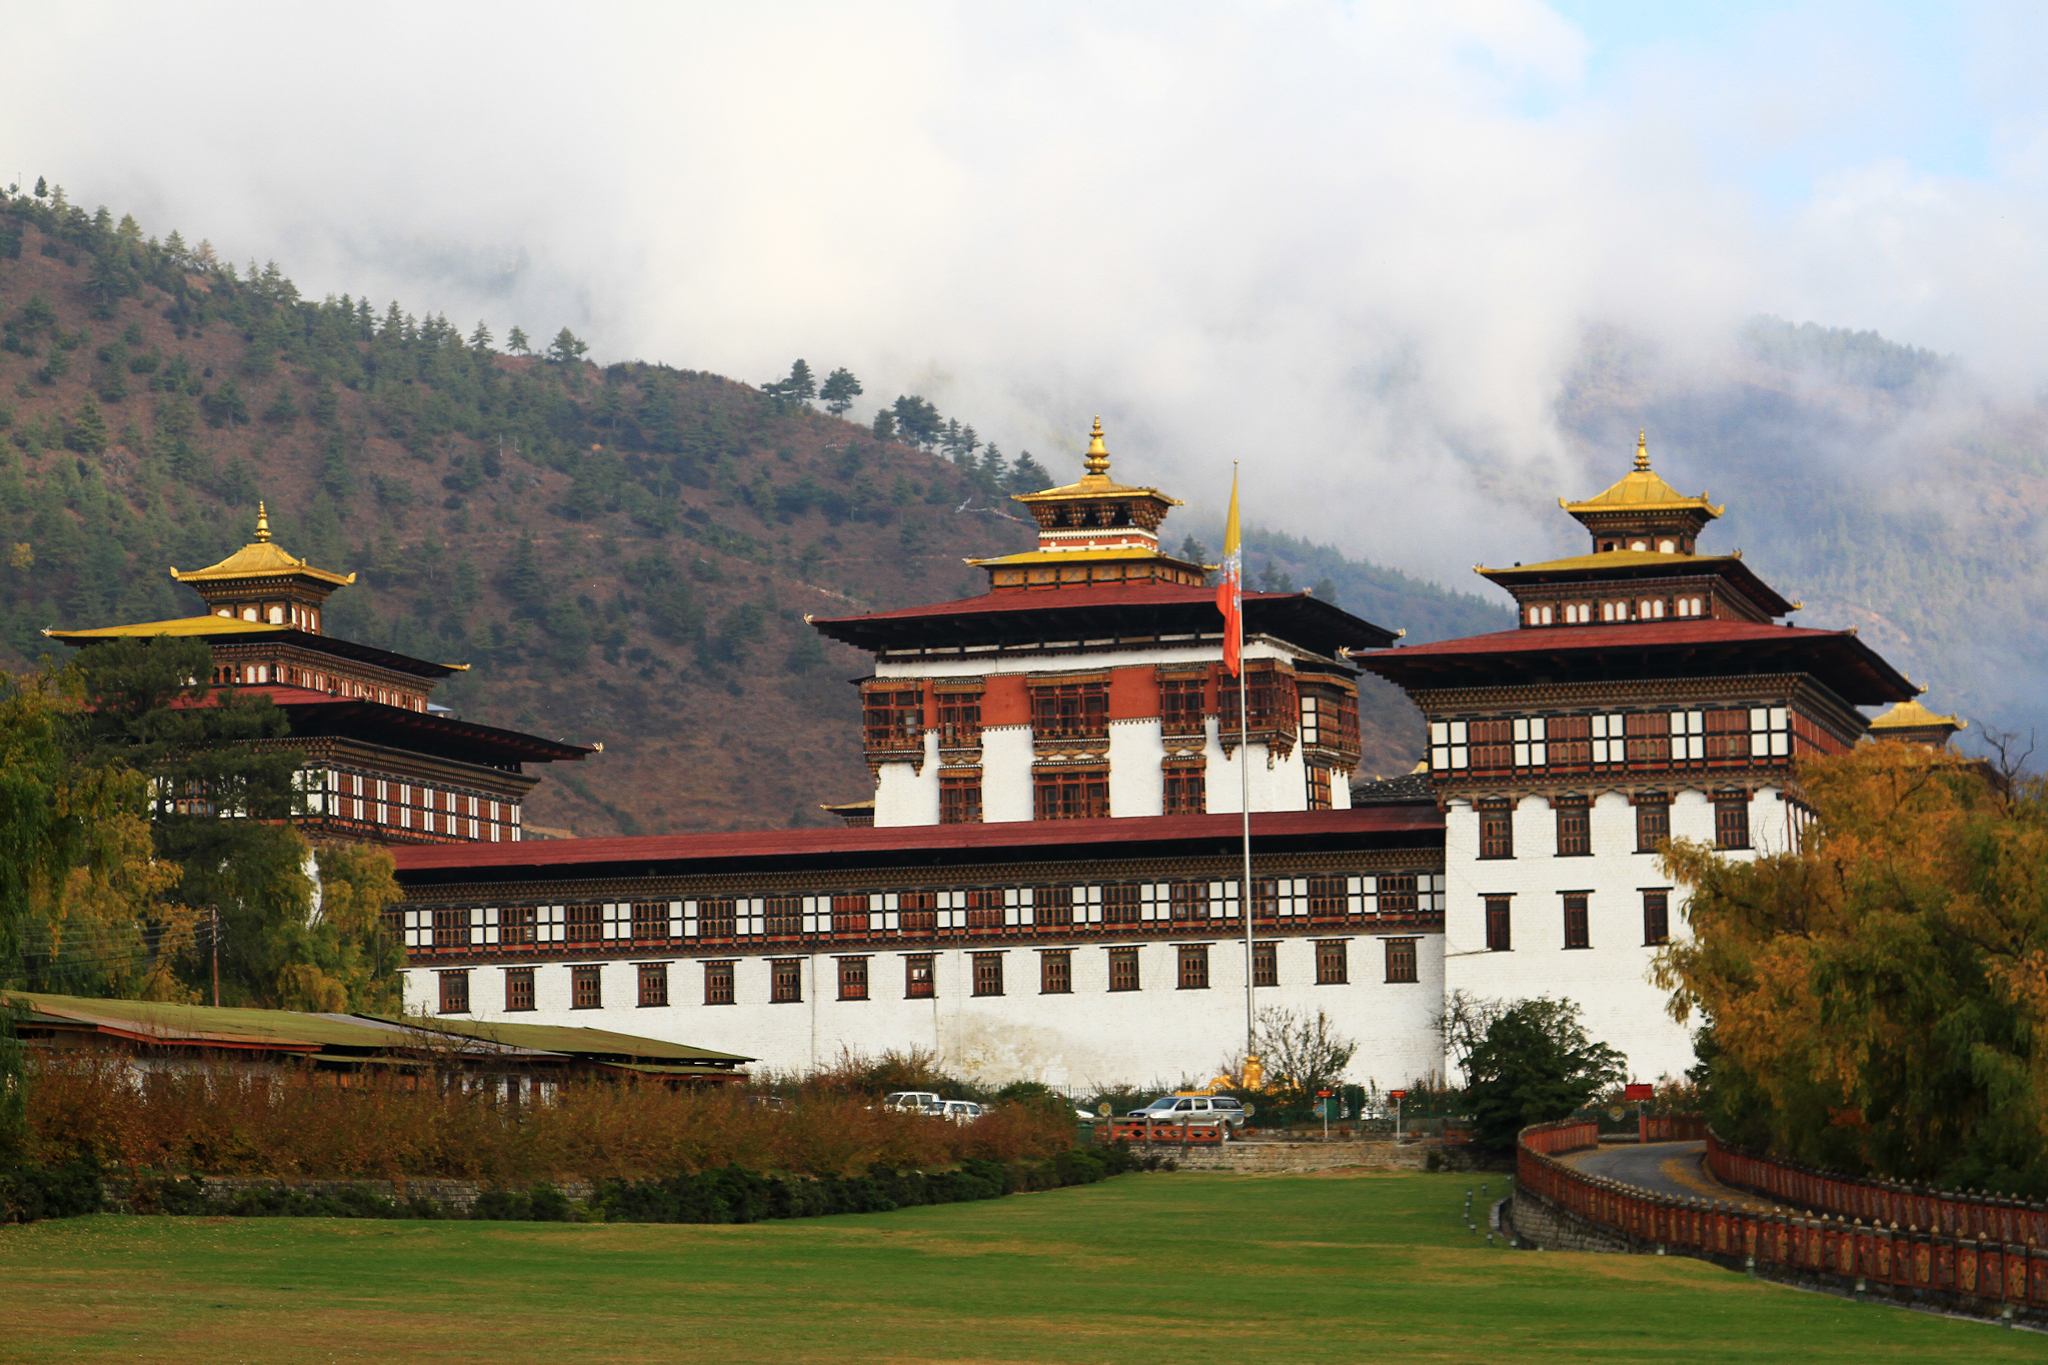 Bhutan Group Tour Dochula Festival - 11th to 17th December-DAY 1